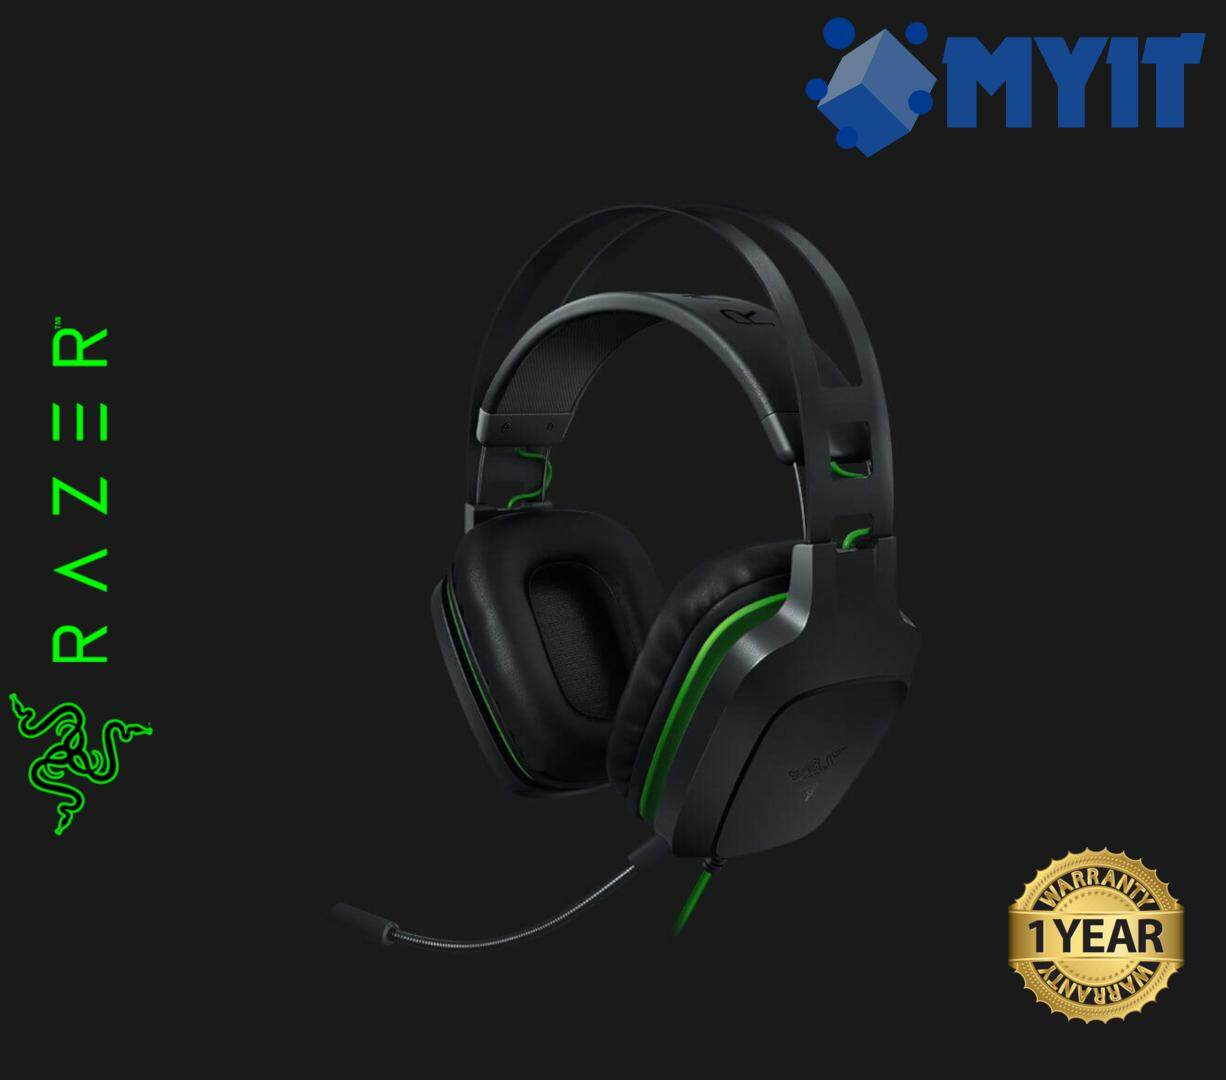 Razer Original Electra V2 PC and Console Gaming Headse with 40mm Drivers Removable Mic (USB Version)